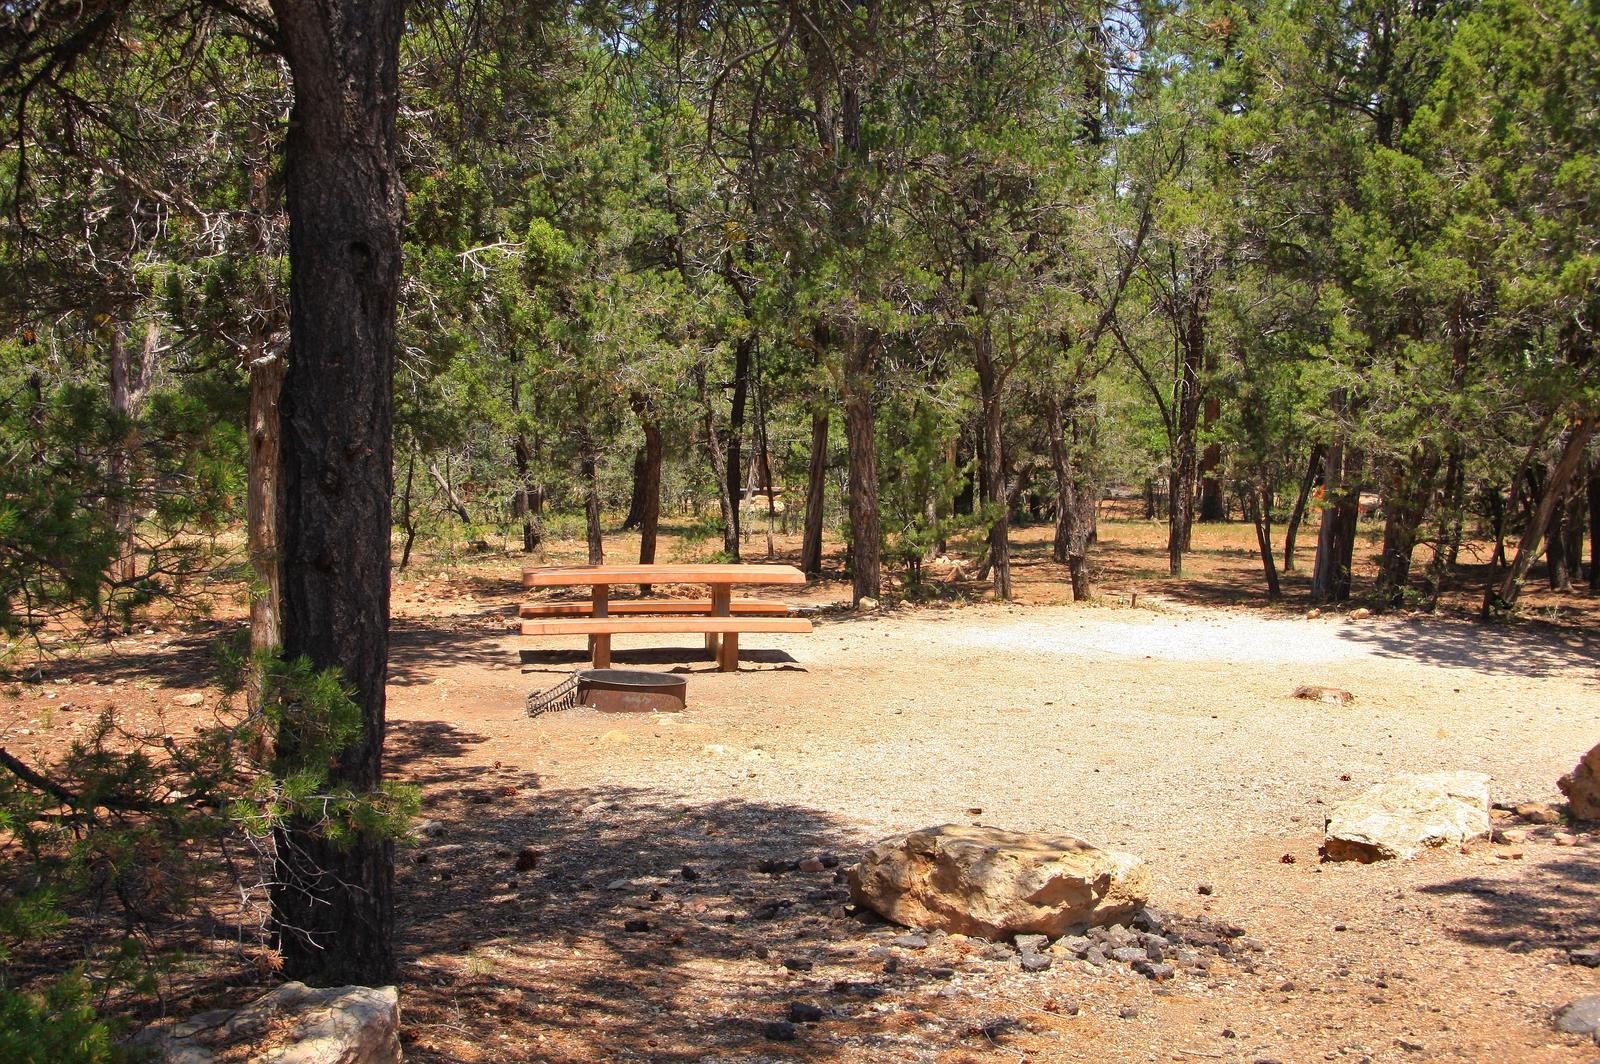 Picnic table, fire pit, and parking spot, Mather CampgroundPicnic table, fire pit, and parking spot for Juniper Loop 116, Mather Campground